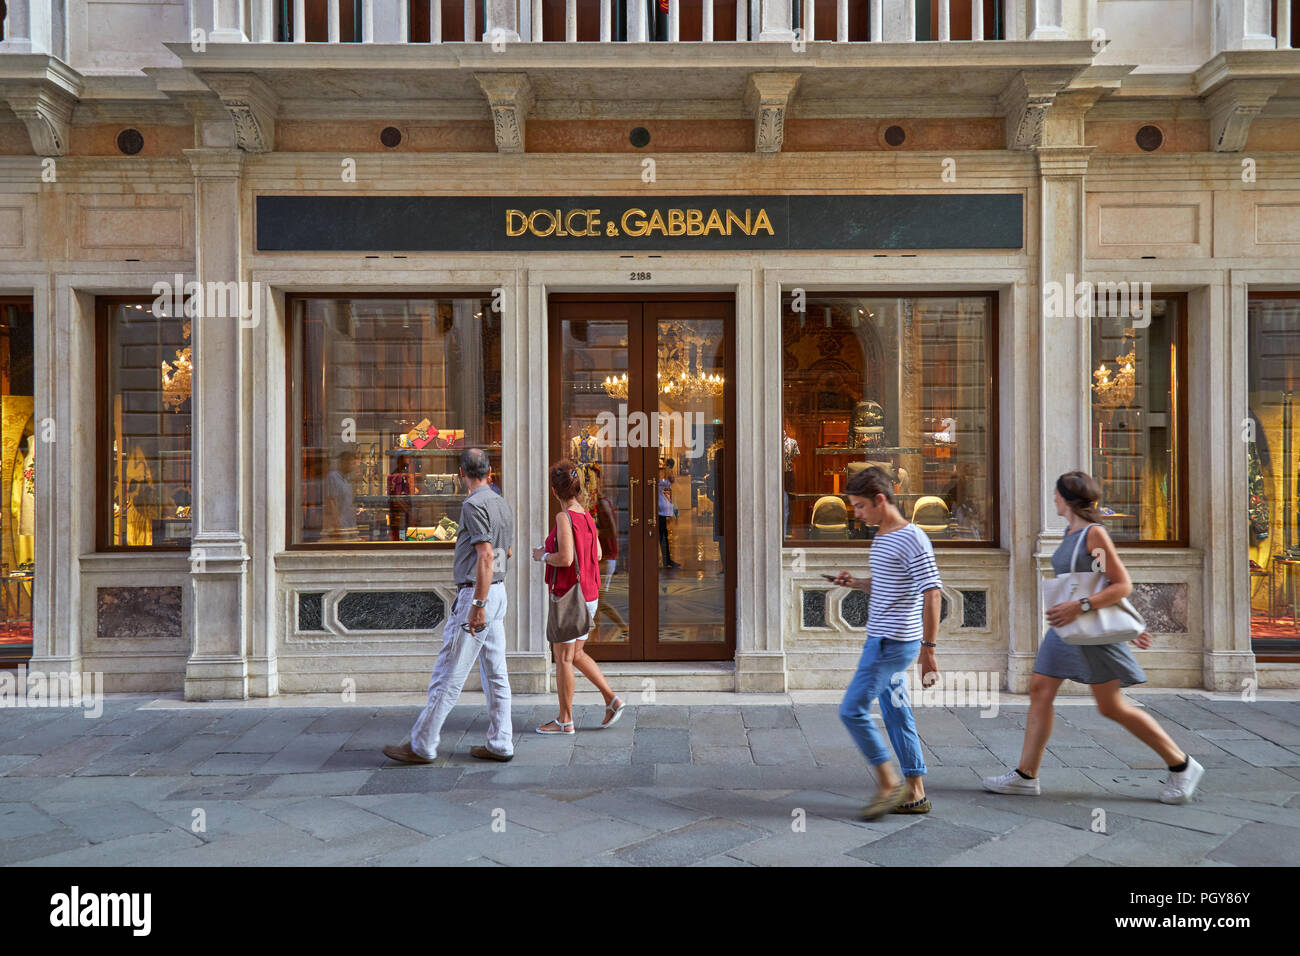 Dolce and Gabbana store with large windows and people walking in Venice, Italy - Stock Image